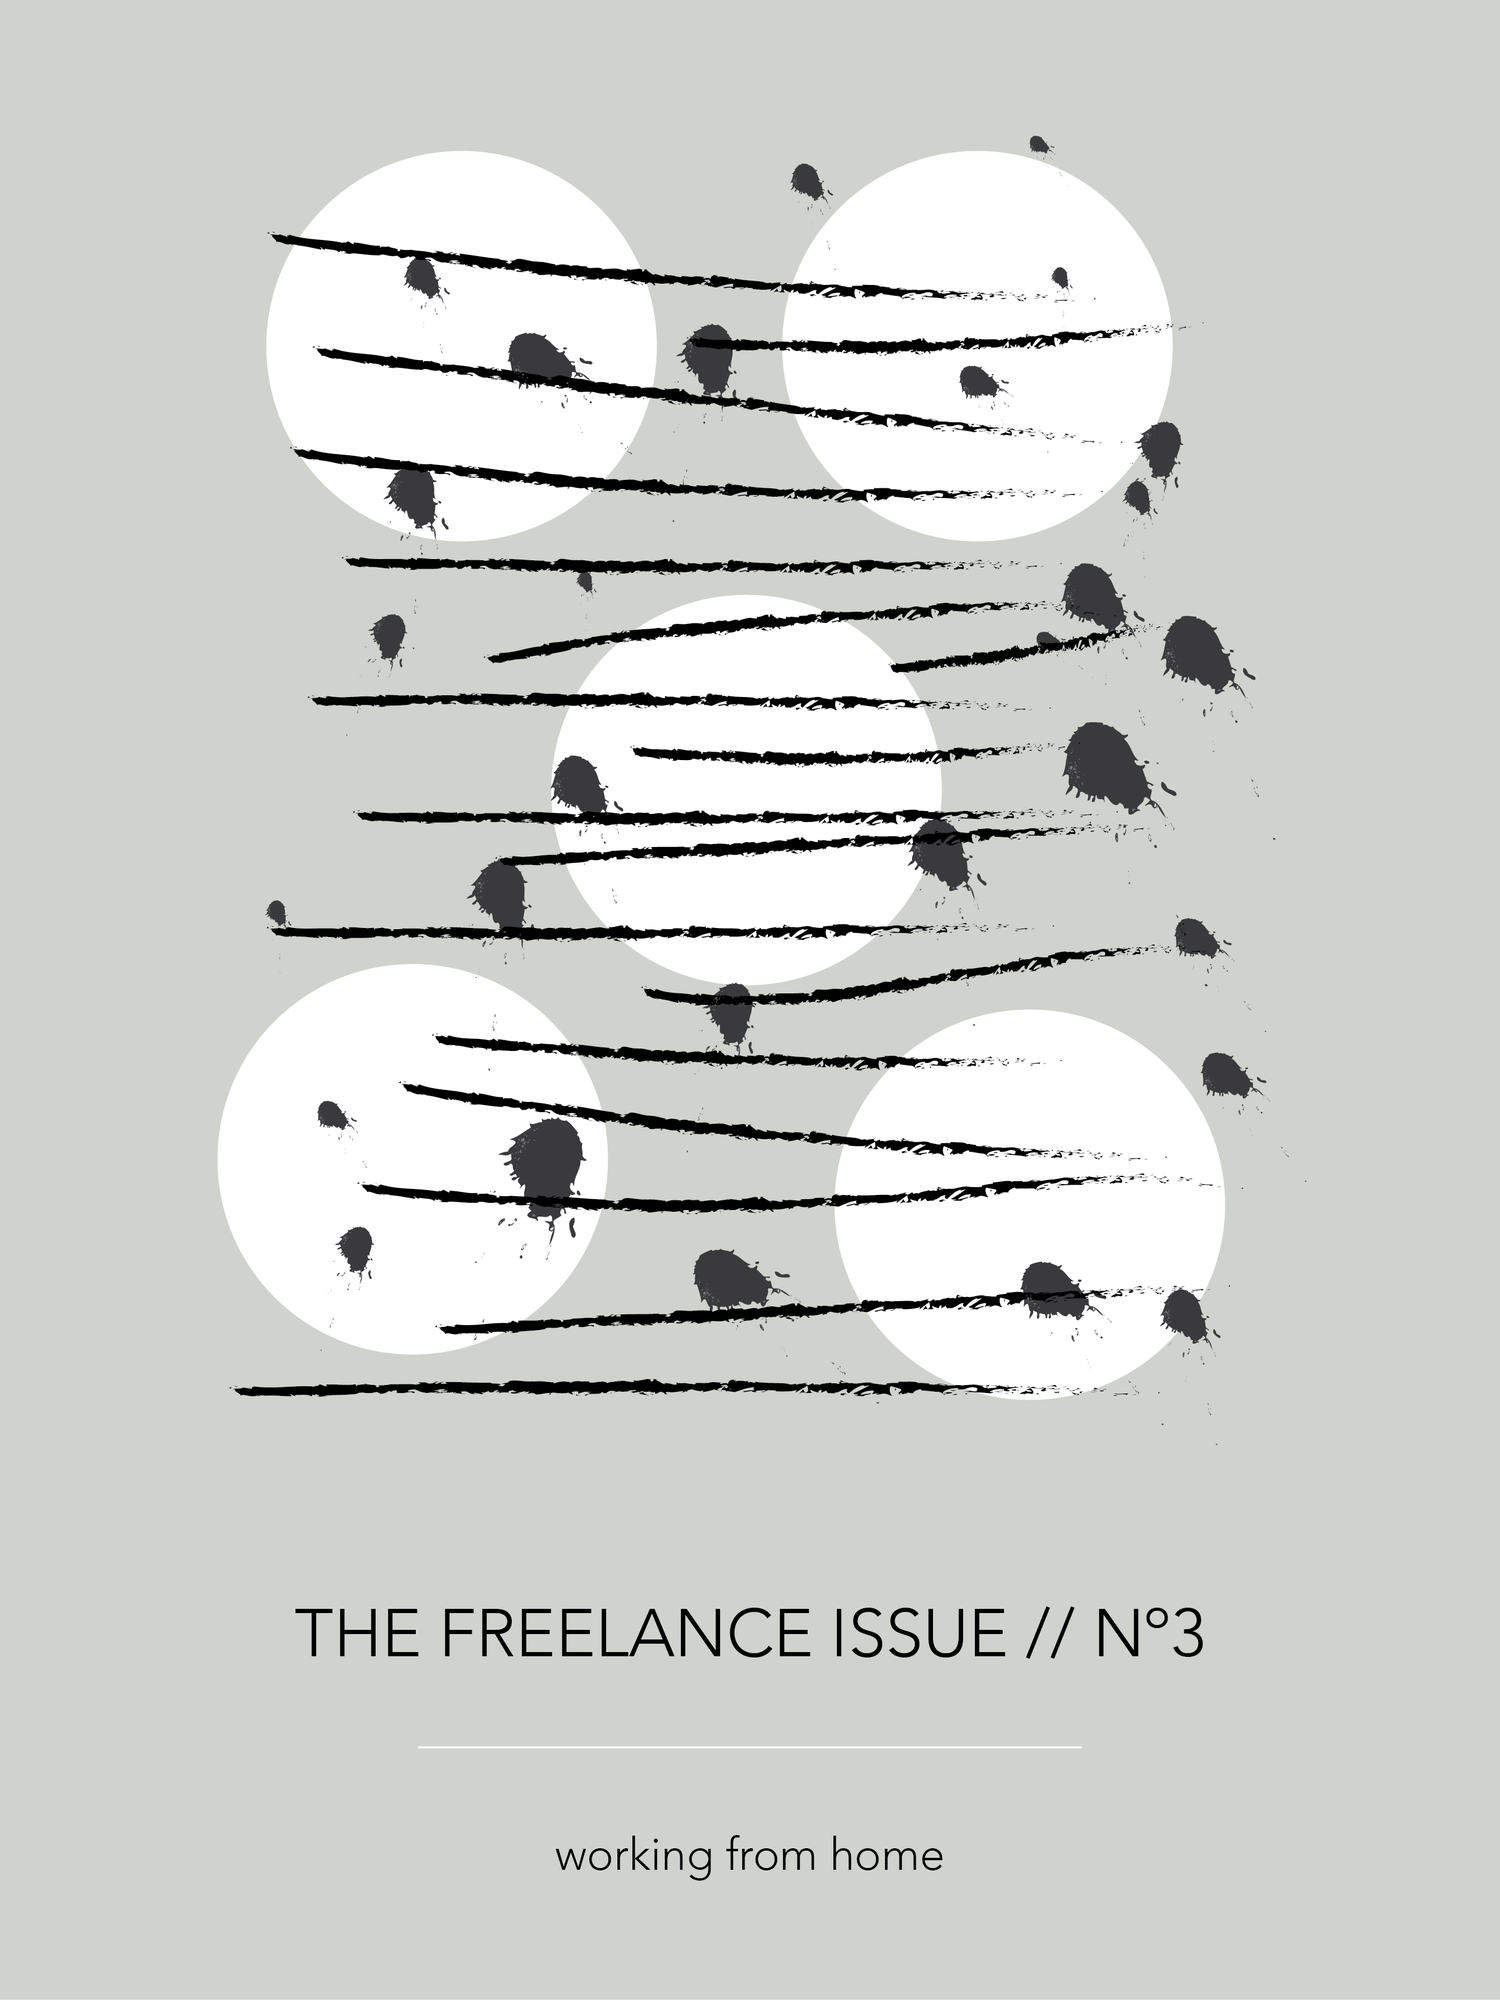 The Freelance Issue No. 3 - Working from Home, by Phylleli #design ...